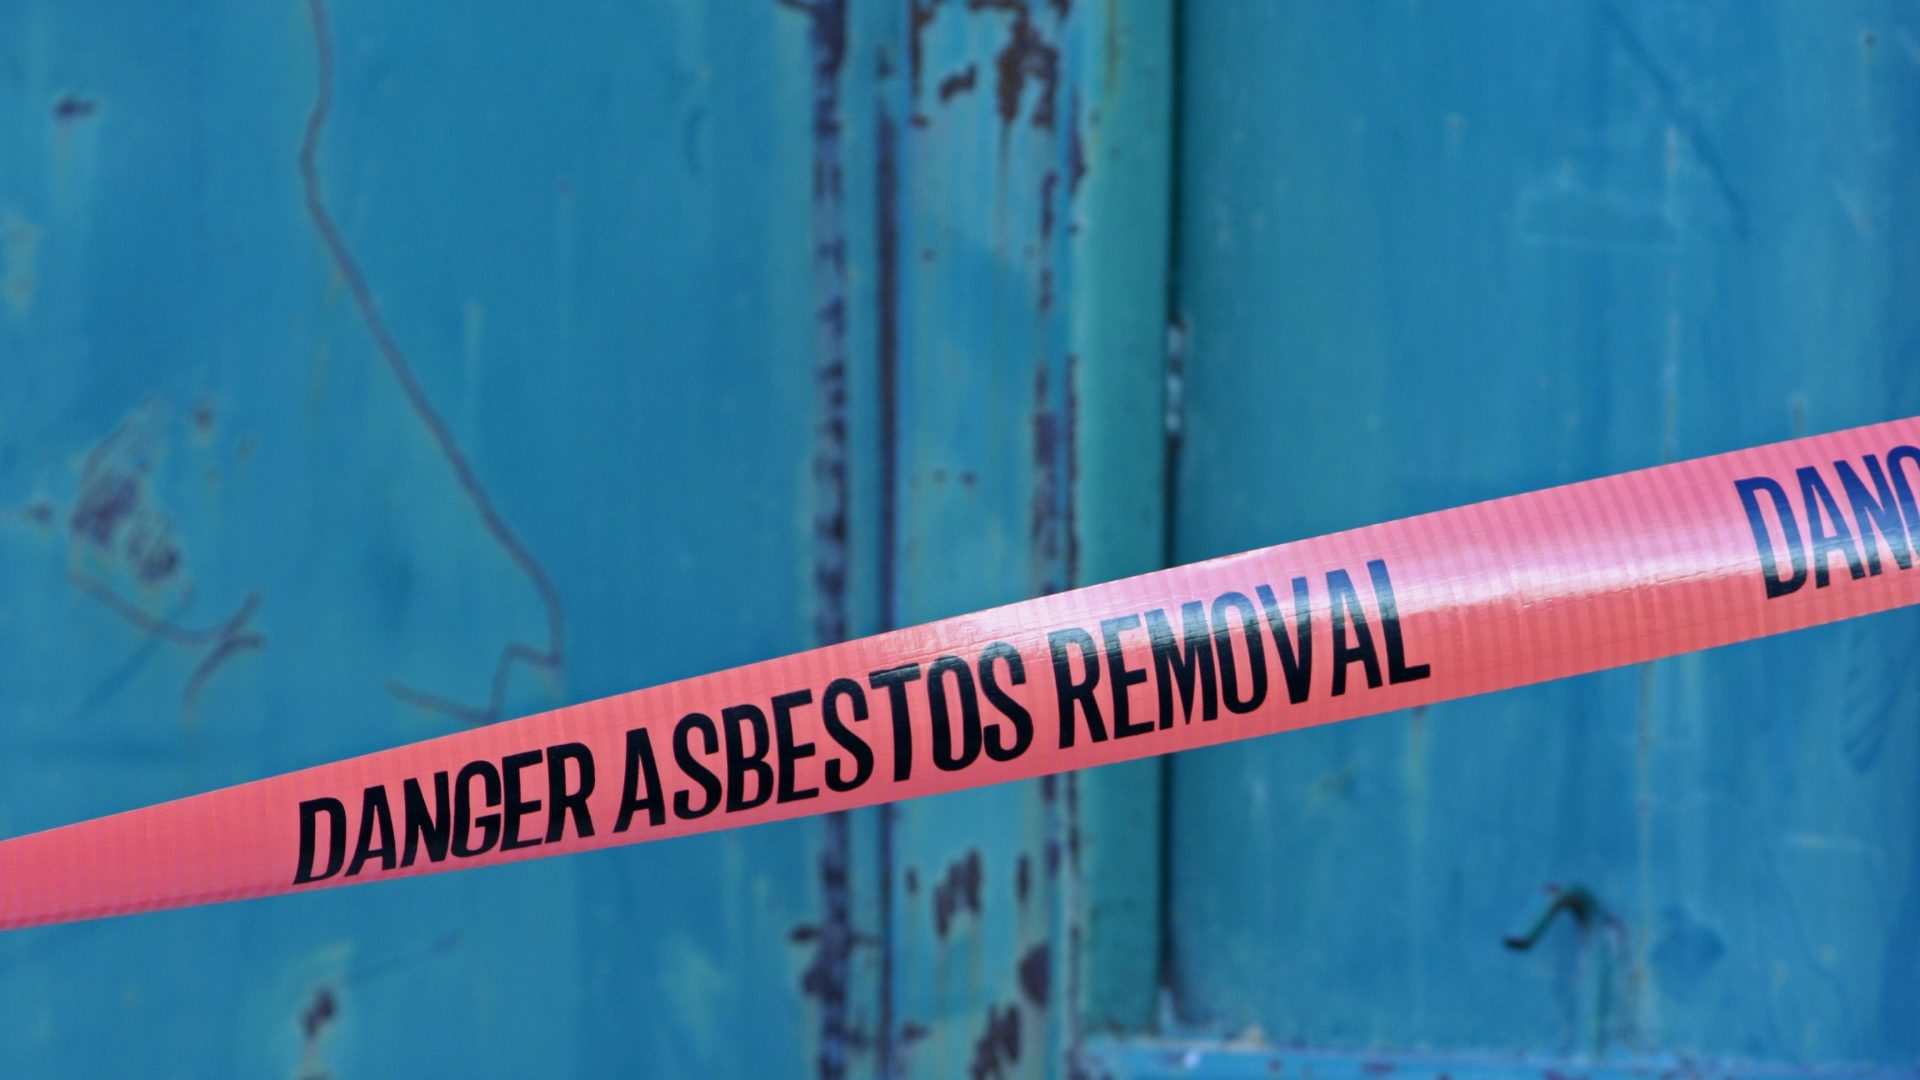 ILLINOIS EMPLOYERS NO LONGER HAVE IMMUNITY FROM ASBESTOS LAWSUITS BROUGHT BY FORMER EMPLOYEES